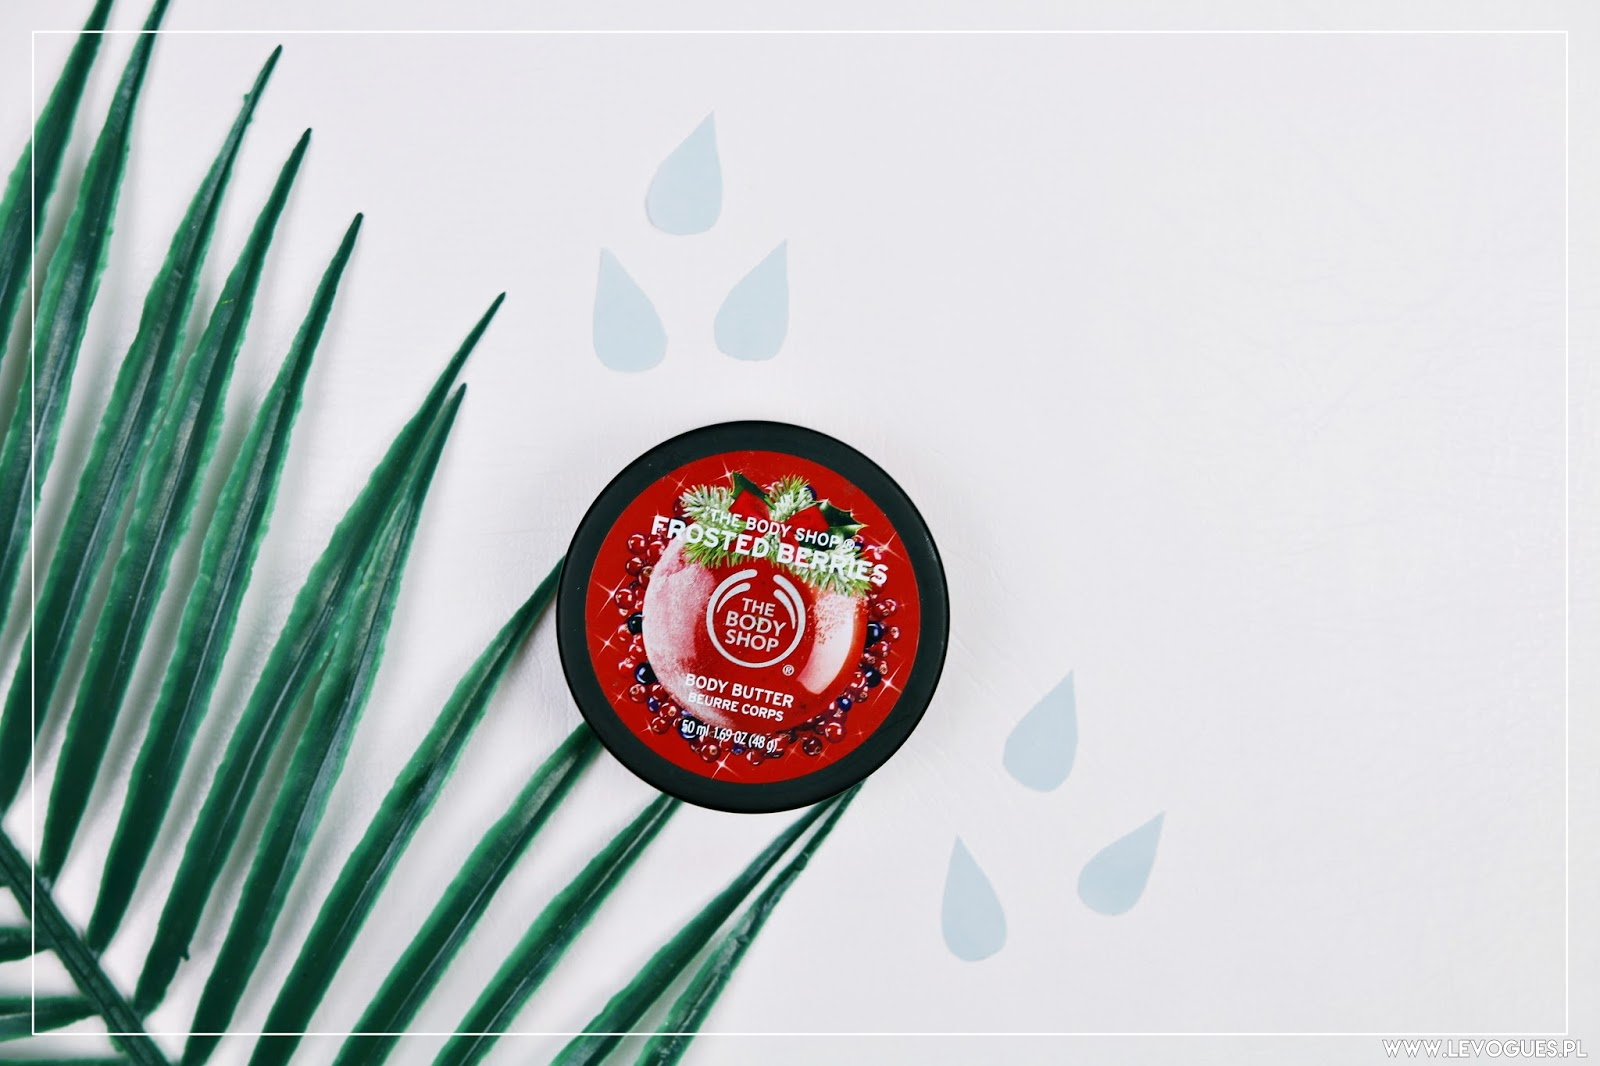 The Body Shop frosten berries body butter